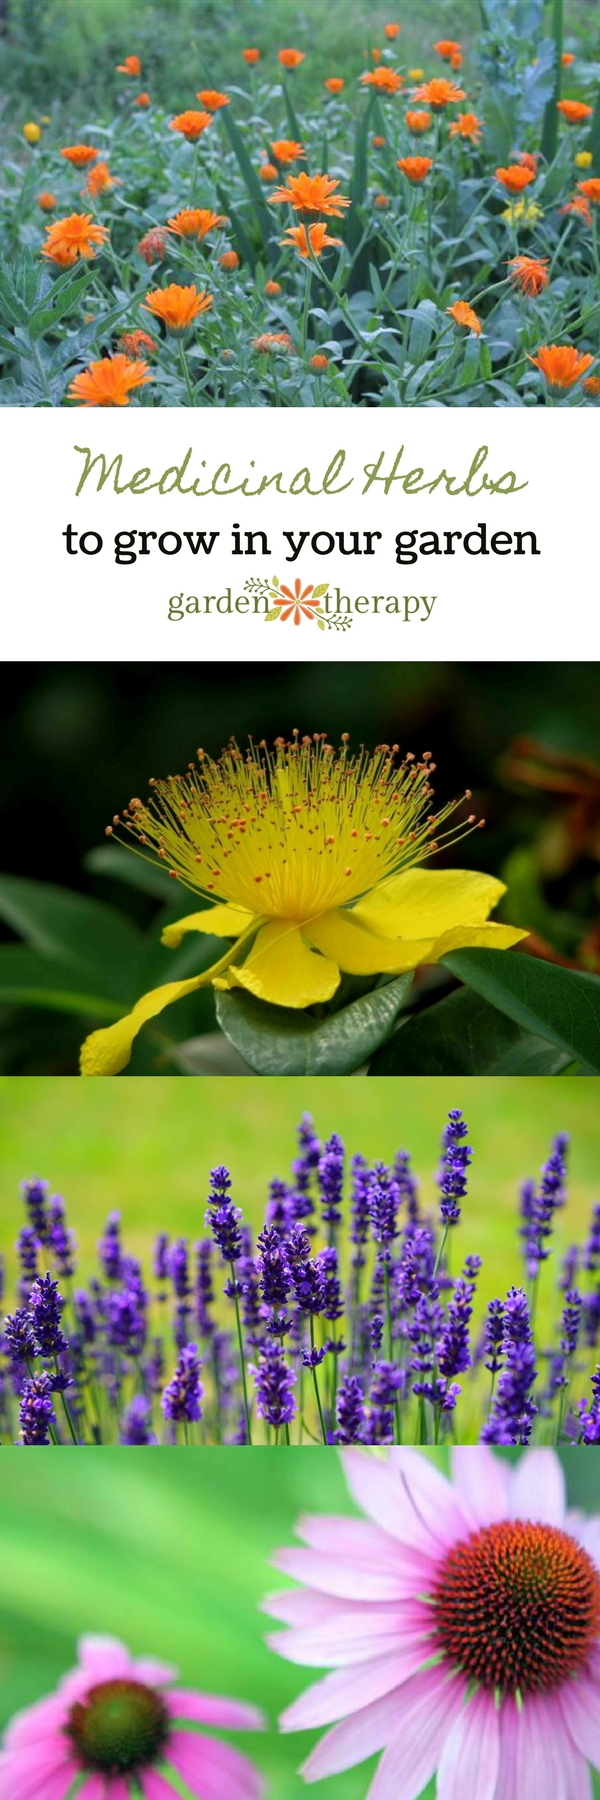 The Top Medicinal Herbs to Grow in Your Garden